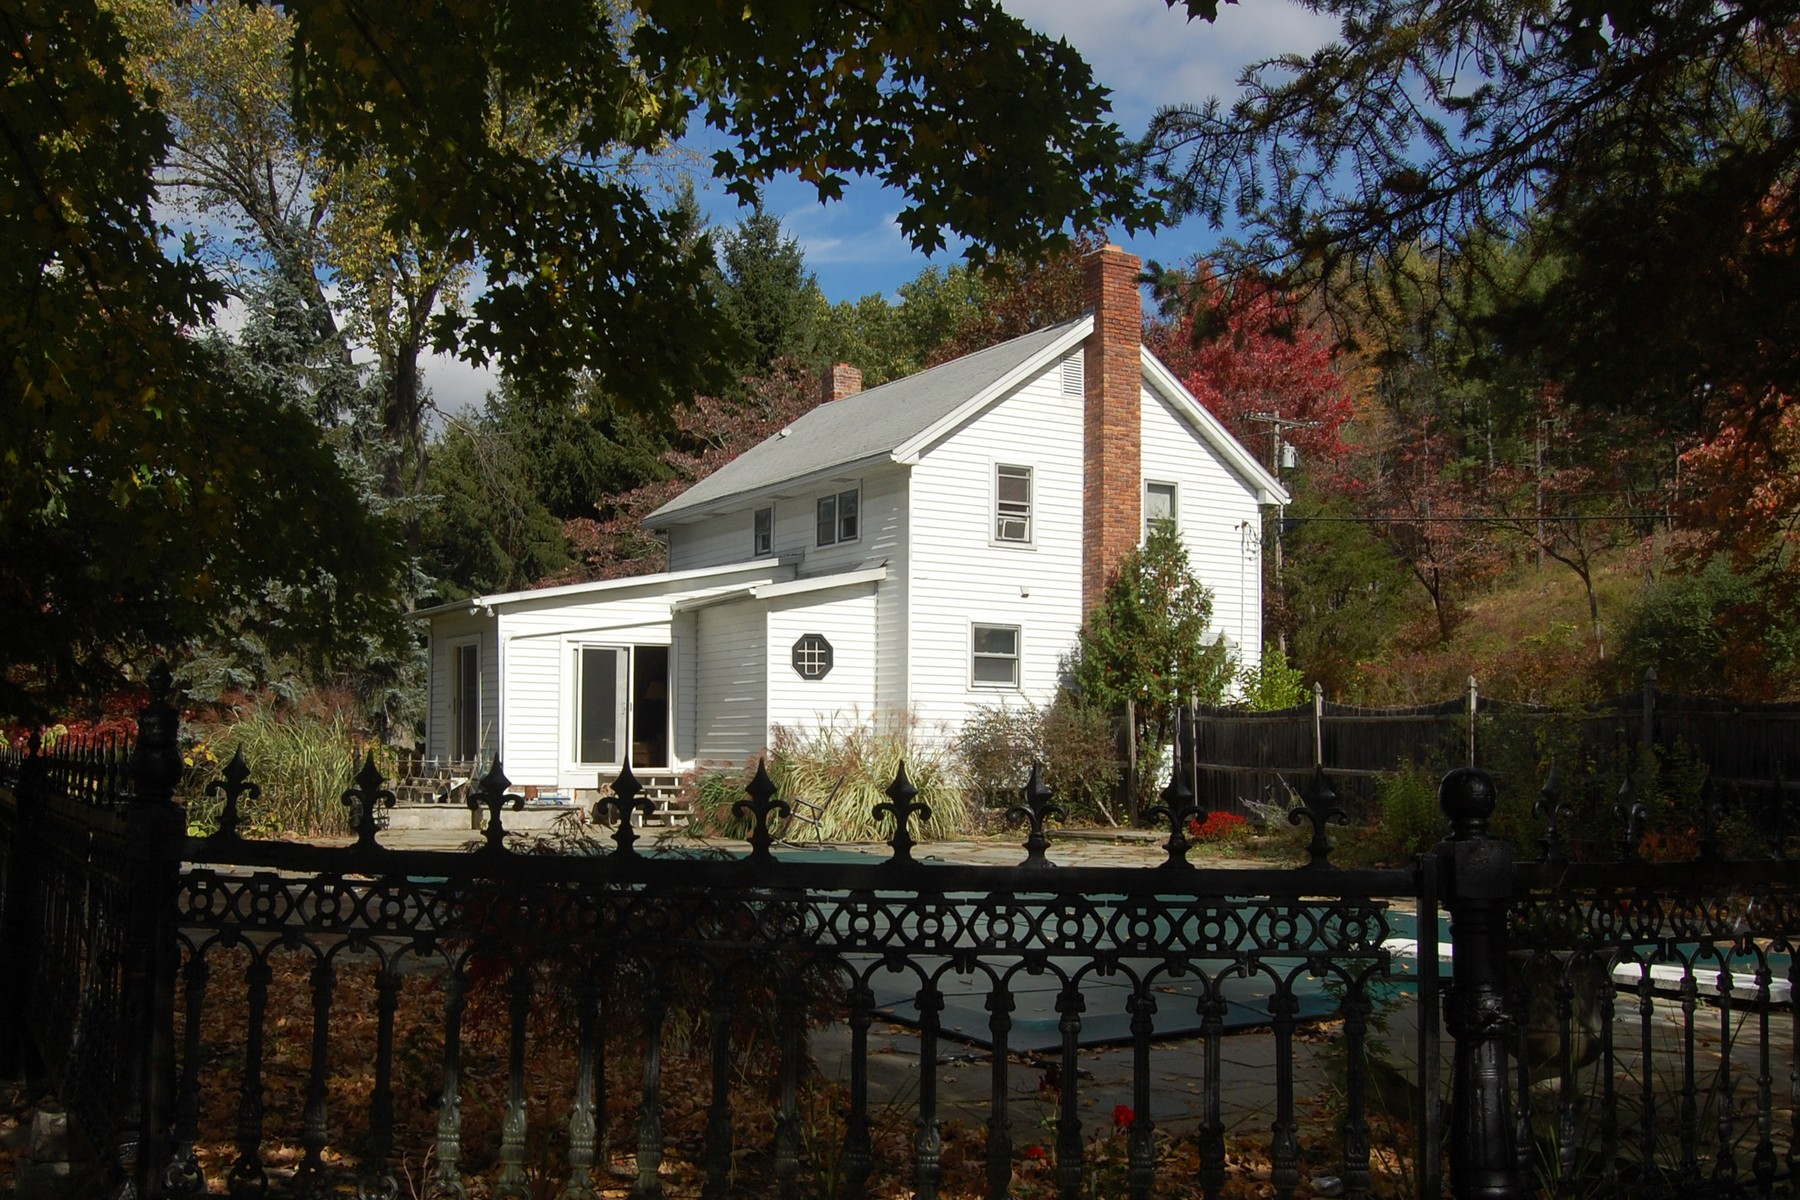 Single Family Home for Sale at I'm a little bit country... 669 Fischer Road Kinderhook, New York 12016 United States